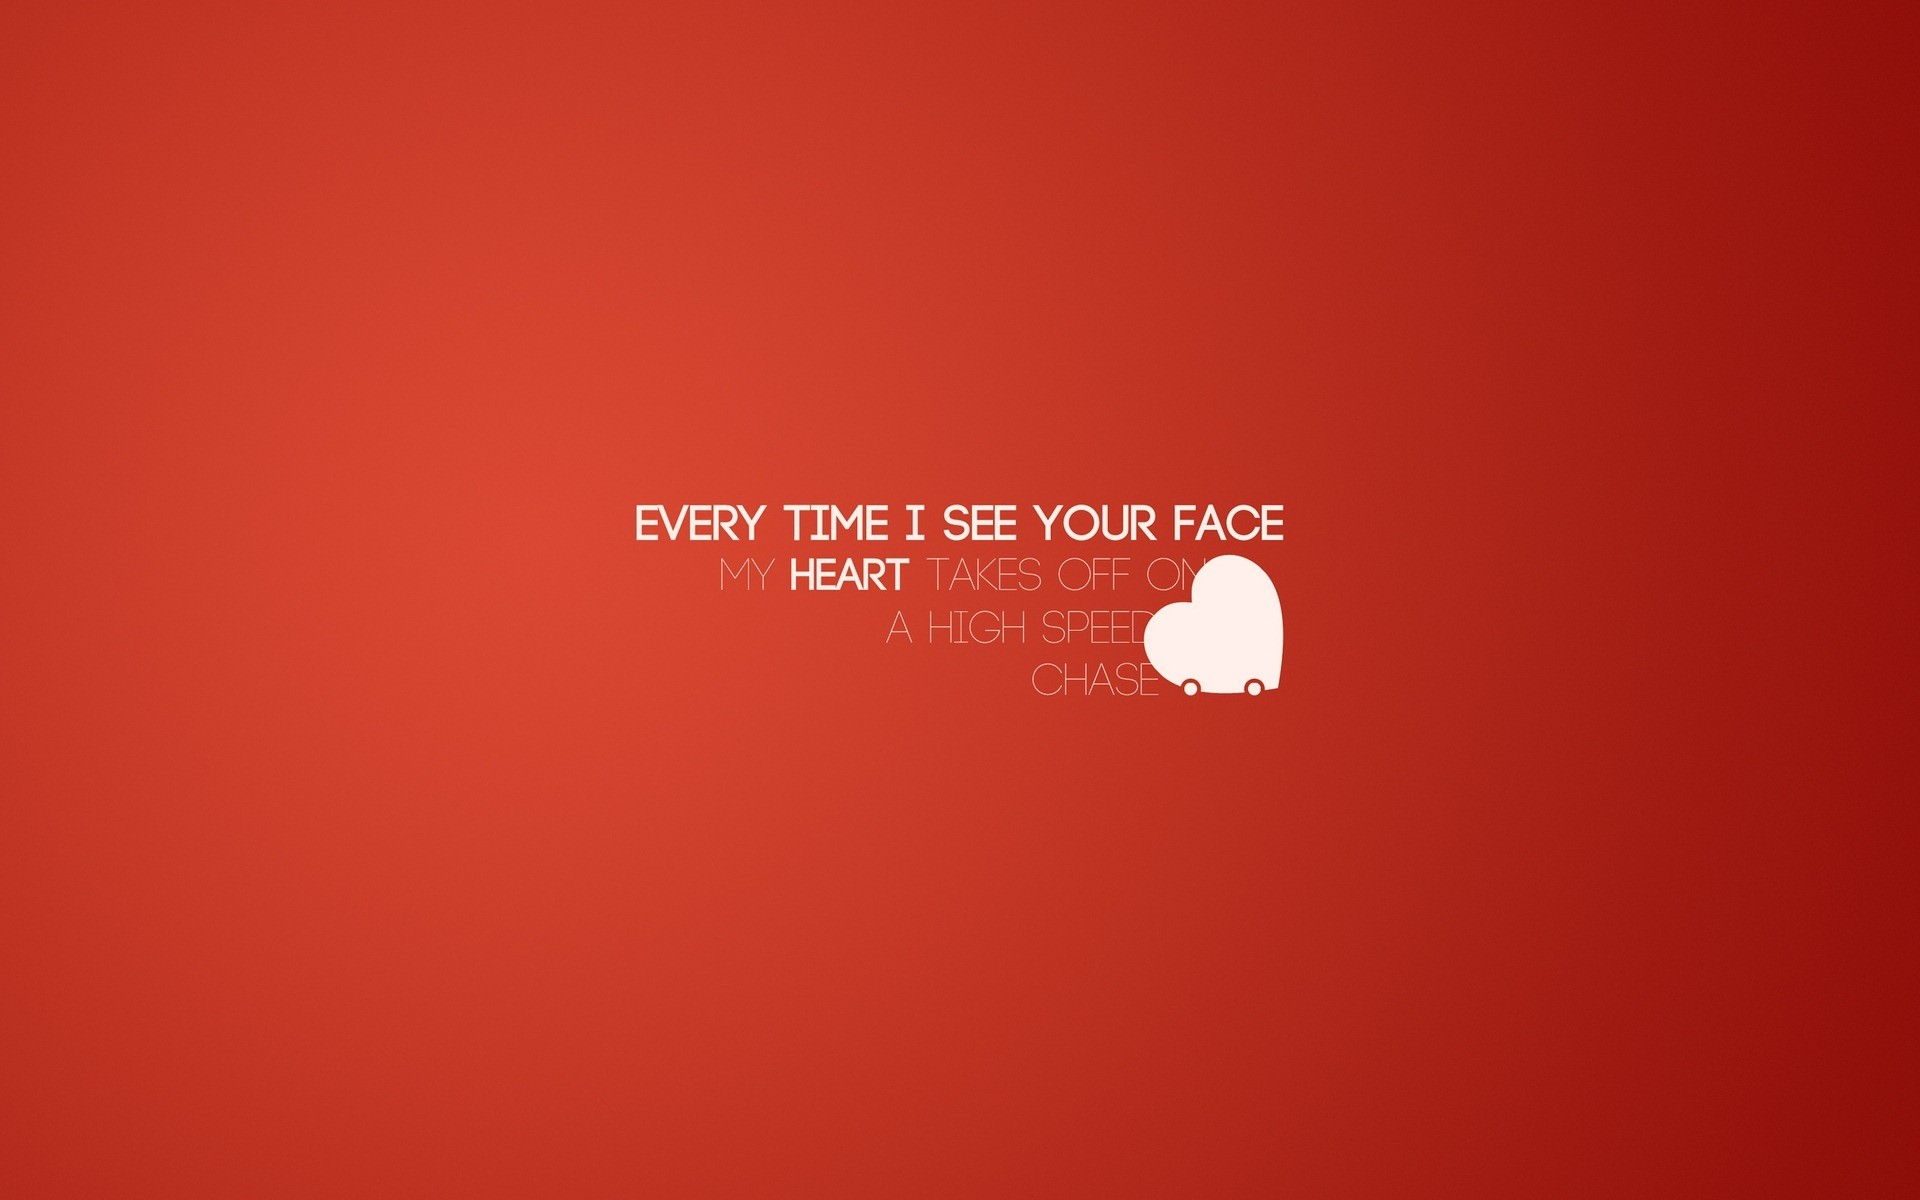 Love Quote Wallpapers   Src Amazing Love Quotes Backgrounds - Love Quotes About Red - HD Wallpaper